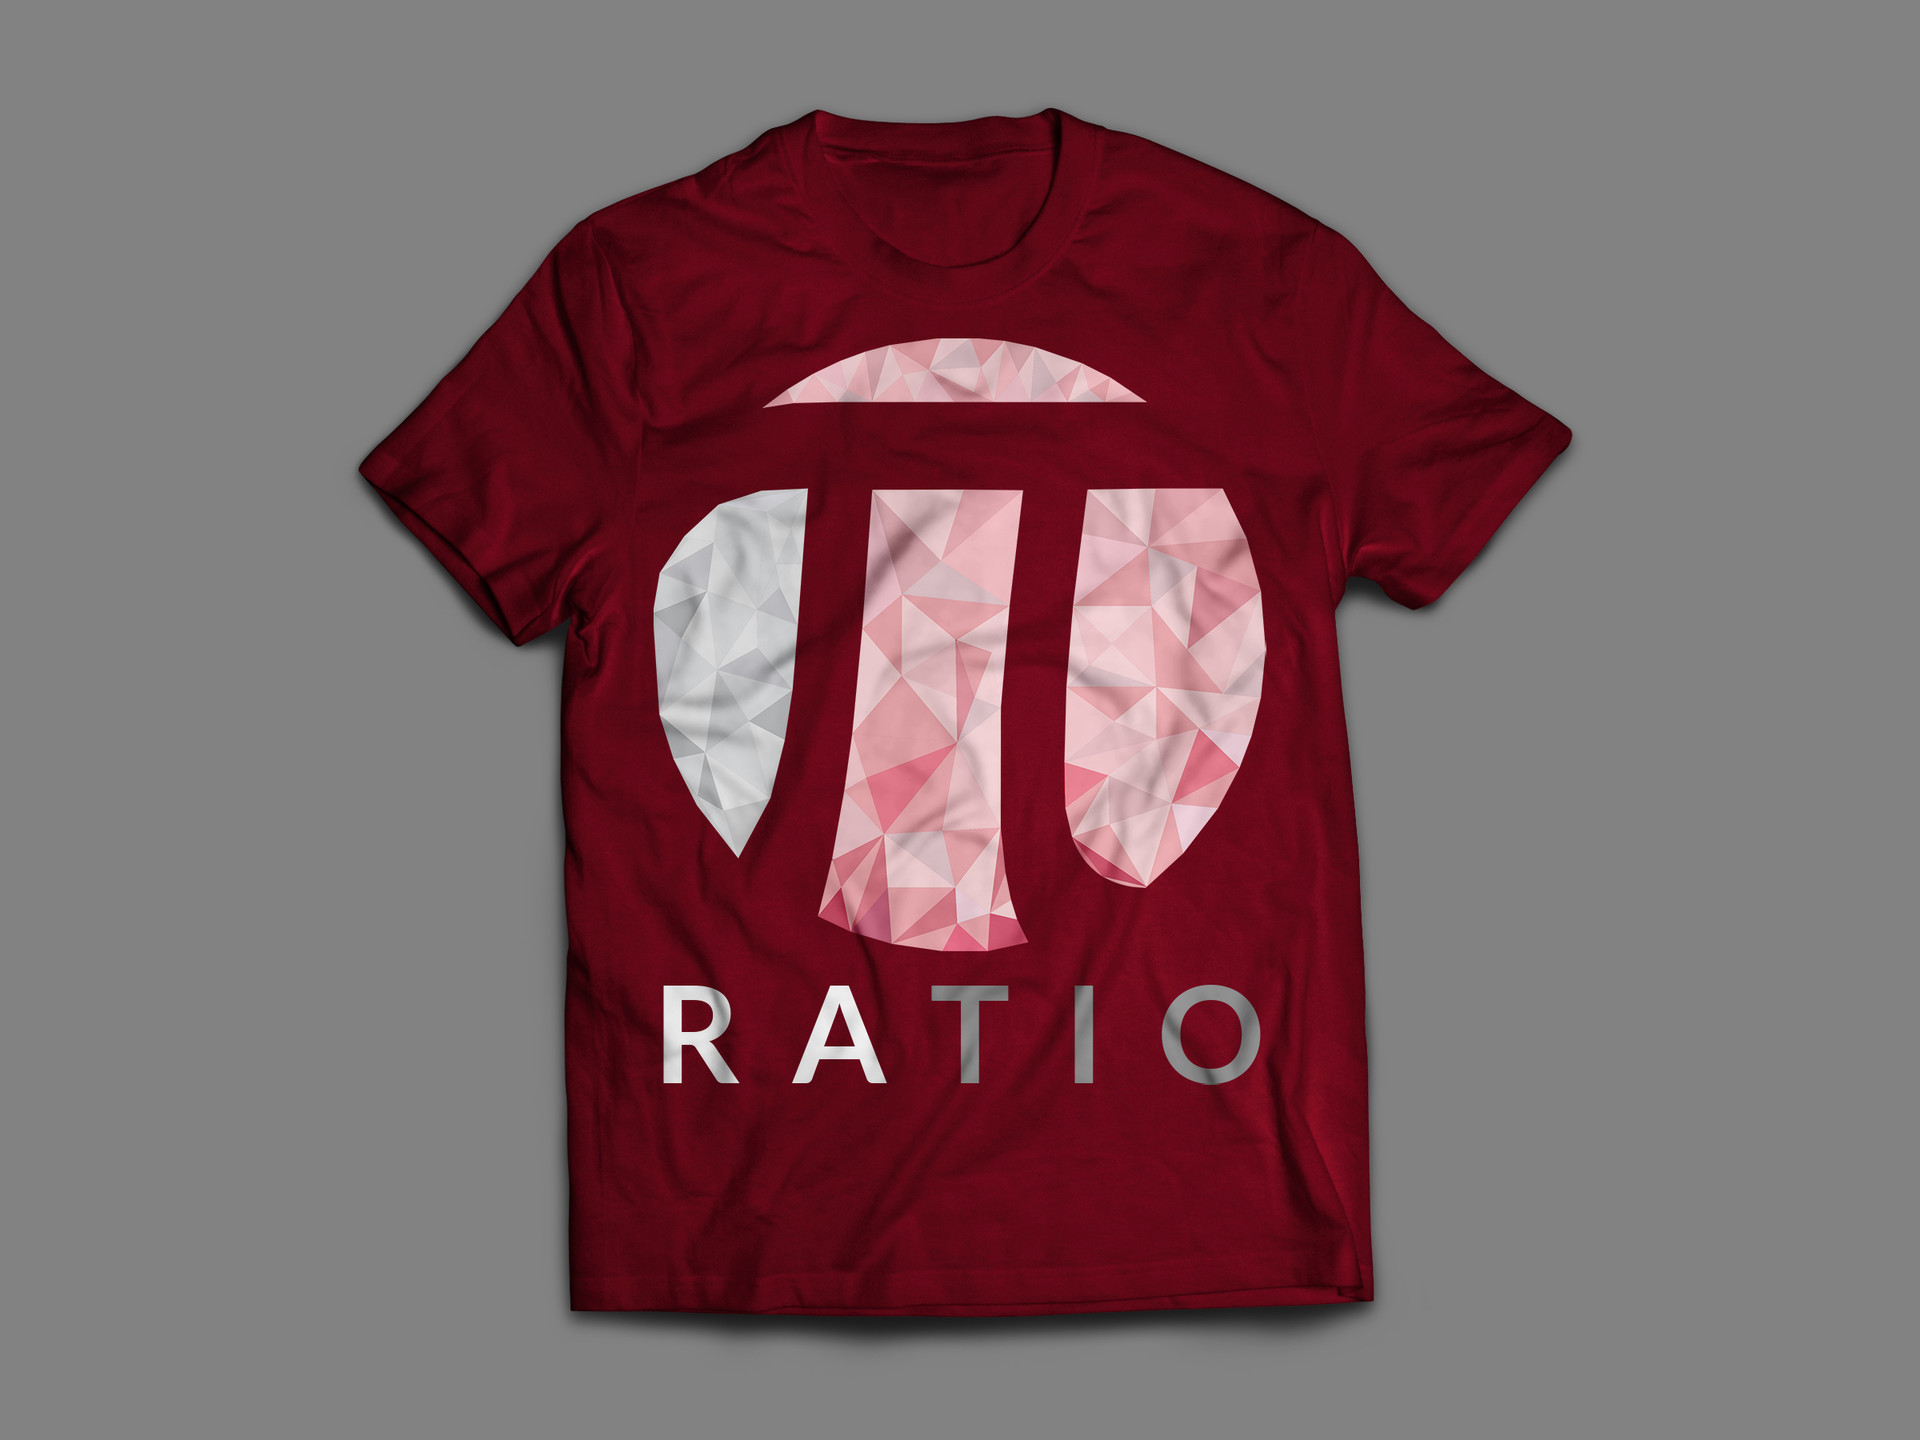 Jerry ubah ratio tshirt front 2